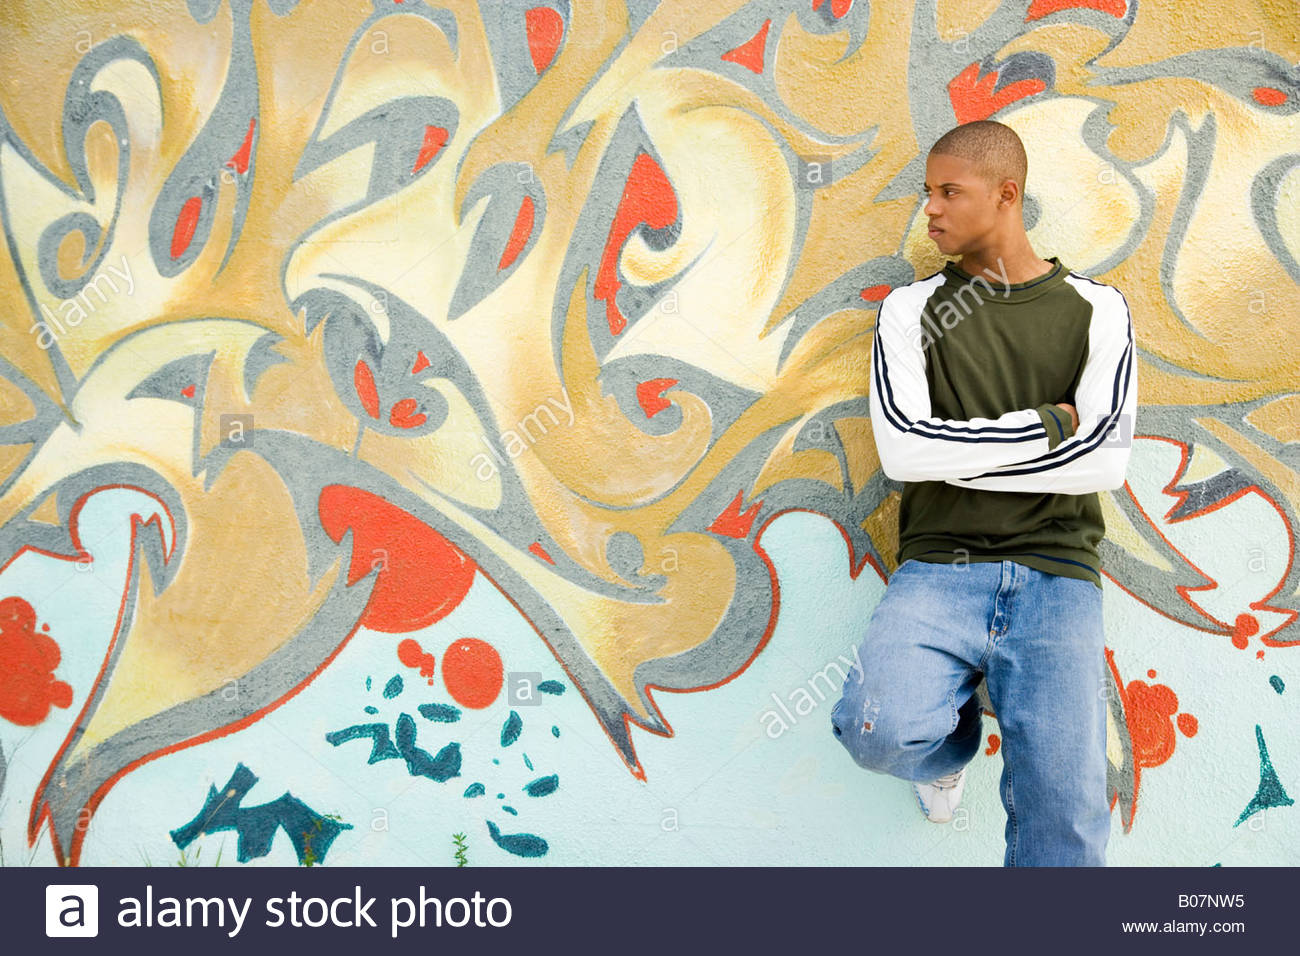 Black Graffiti Stock Photos & Black Graffiti Stock Images - Alamy